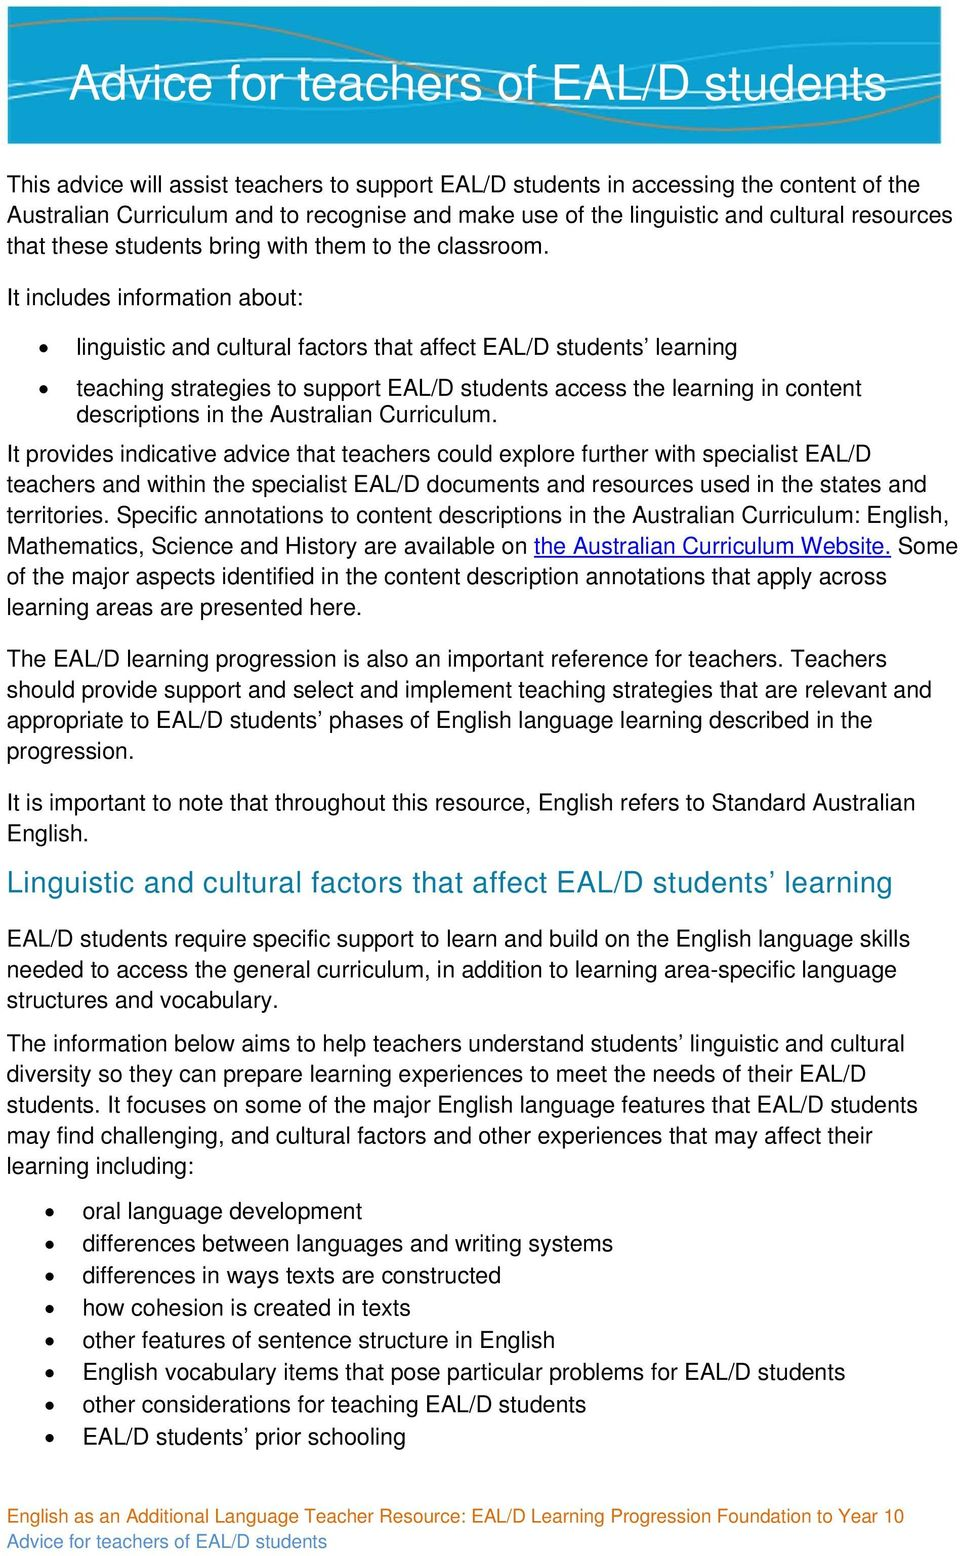 It includes information about: linguistic and cultural factors that affect EAL/D students learning teaching strategies to support EAL/D students access the learning in content descriptions in the